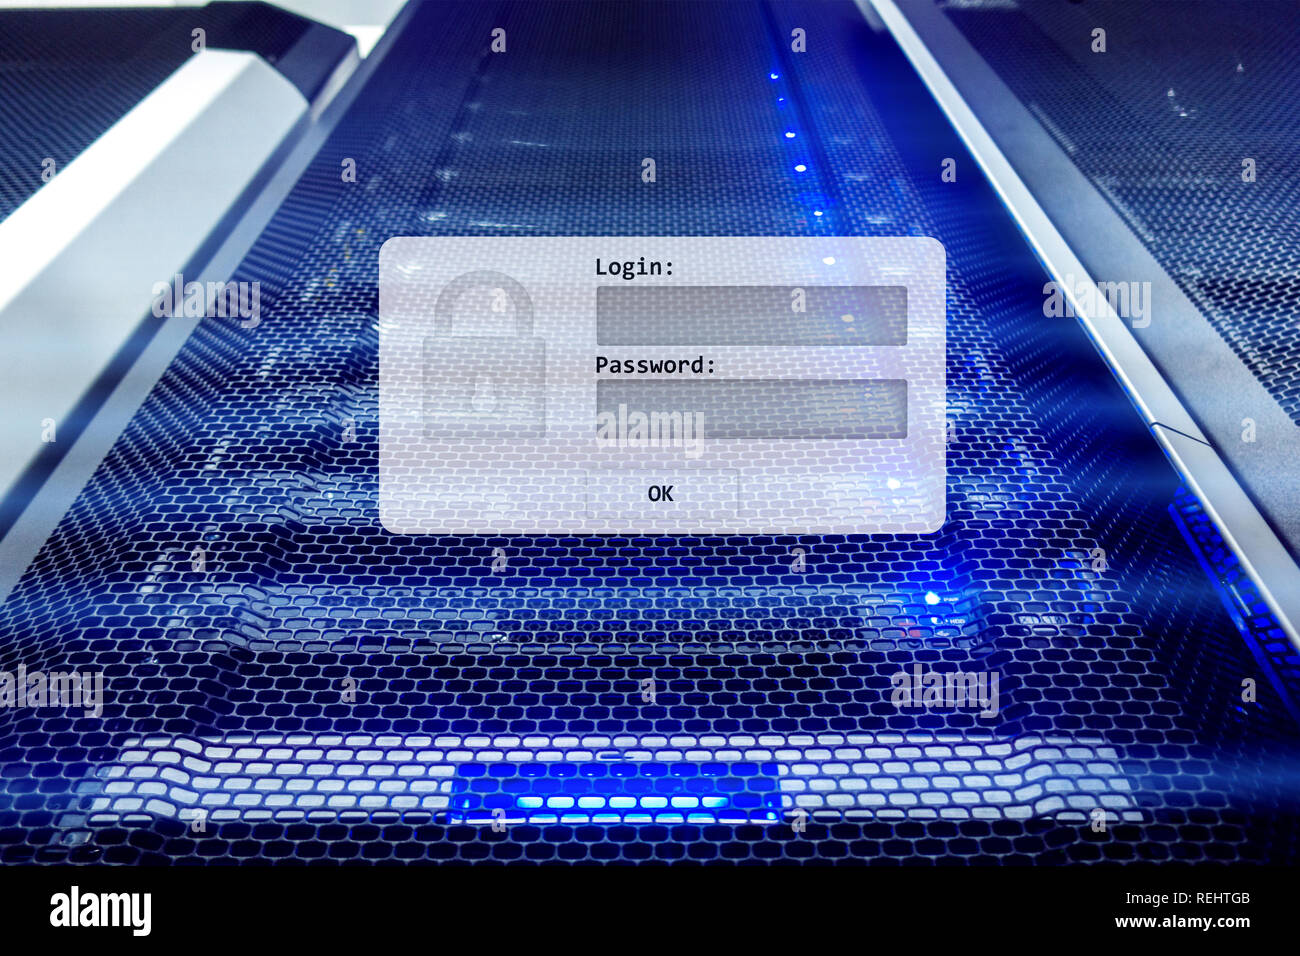 Server room, login and password request, data access and security Stock Photo